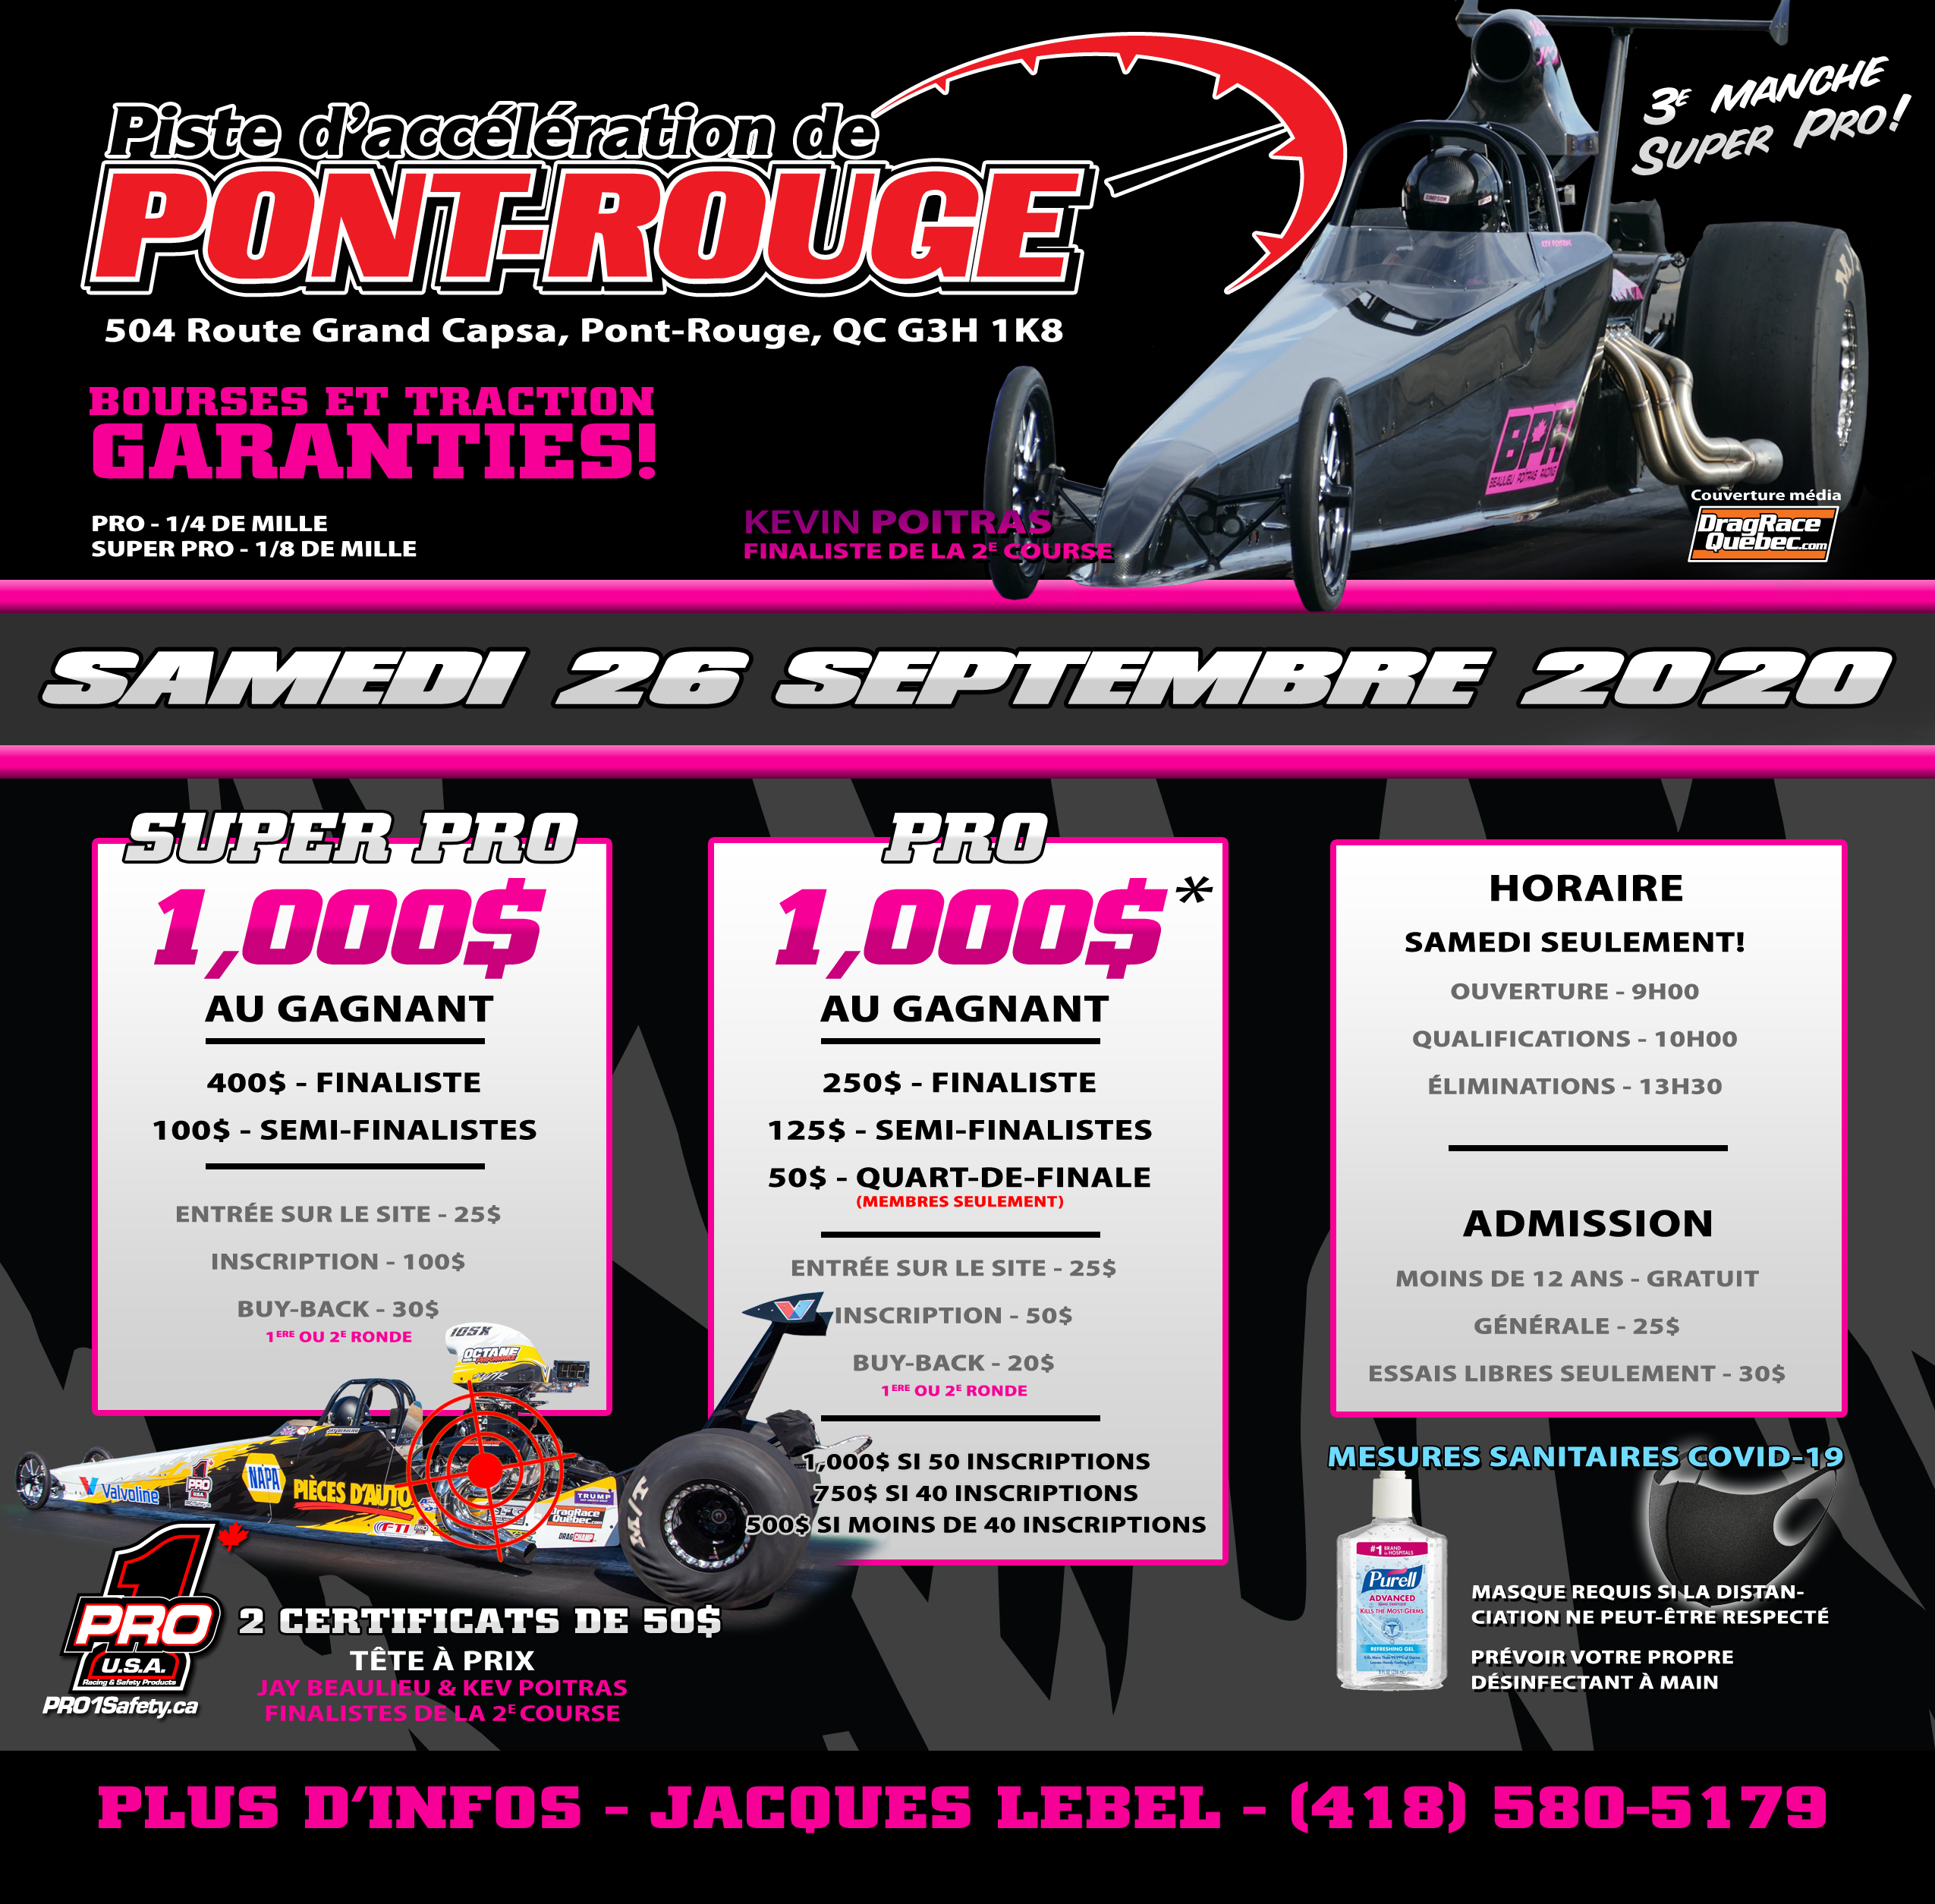 2020-09-16 Flyer Pont-Rouge 3